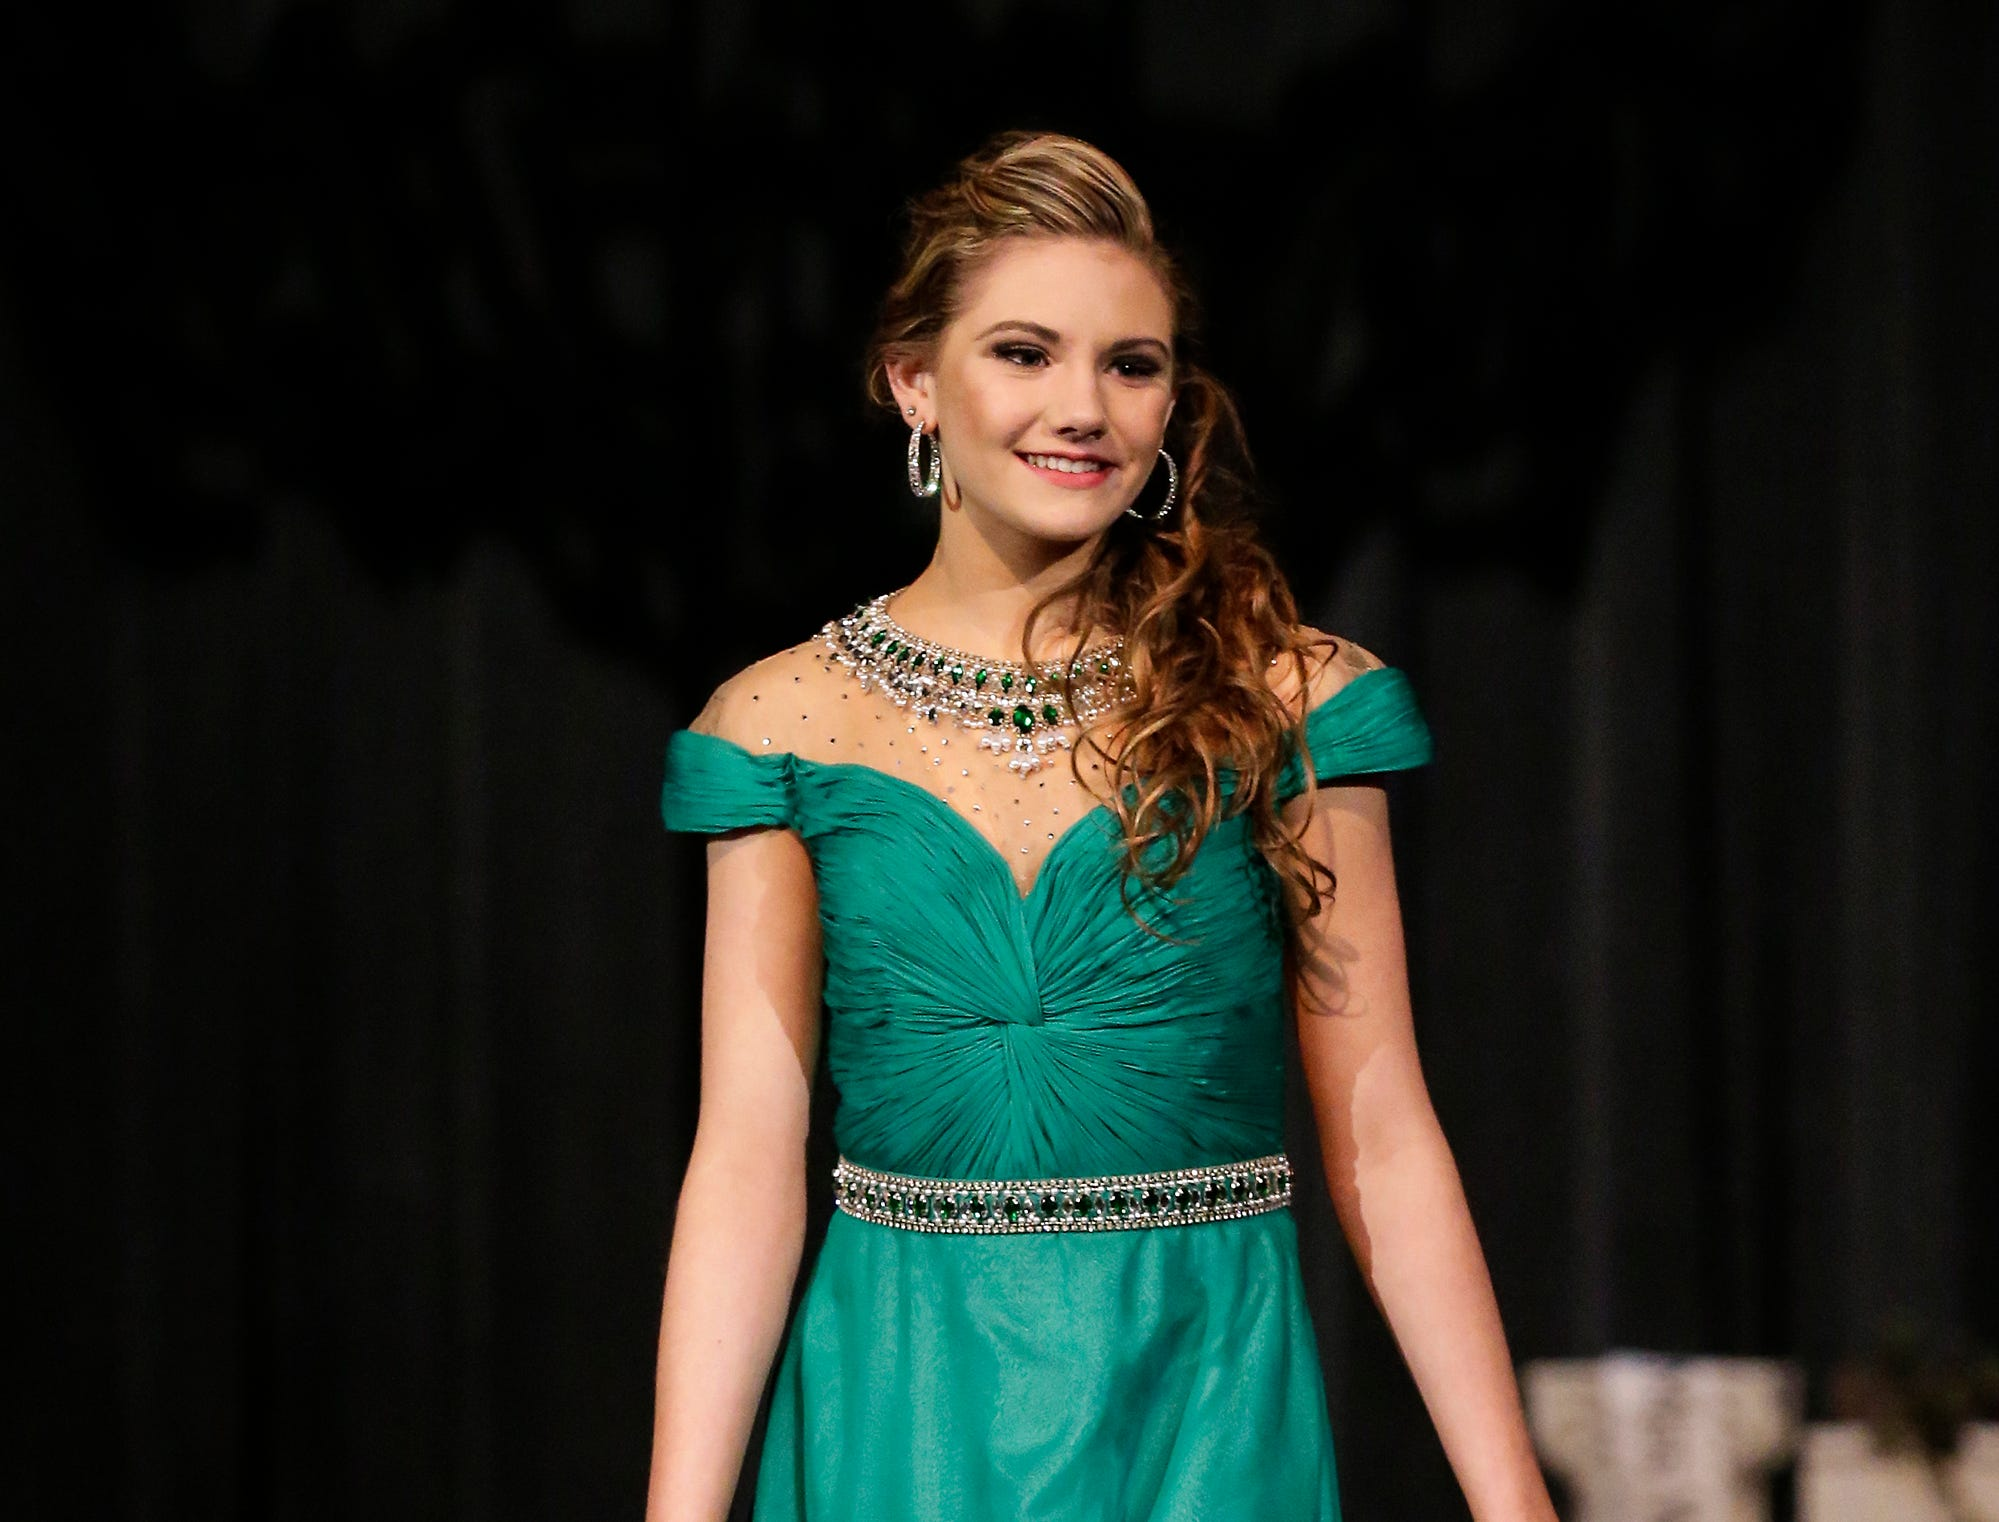 Miss Fond du Lac's Outstanding Teen contestant  Kiana Schraufnagel participates in the evening wear portion of the Miss Fond du Lac, Miss Wisconsin Central and Miss Fond du Lac's Outstanding Teen 2019 scholarship competitions Saturday, March 9, 2019 at the Goodrich Little Theater in Fond du Lac, Wis. Doug Raflik/USA TODAY NETWORK-Wisconsin